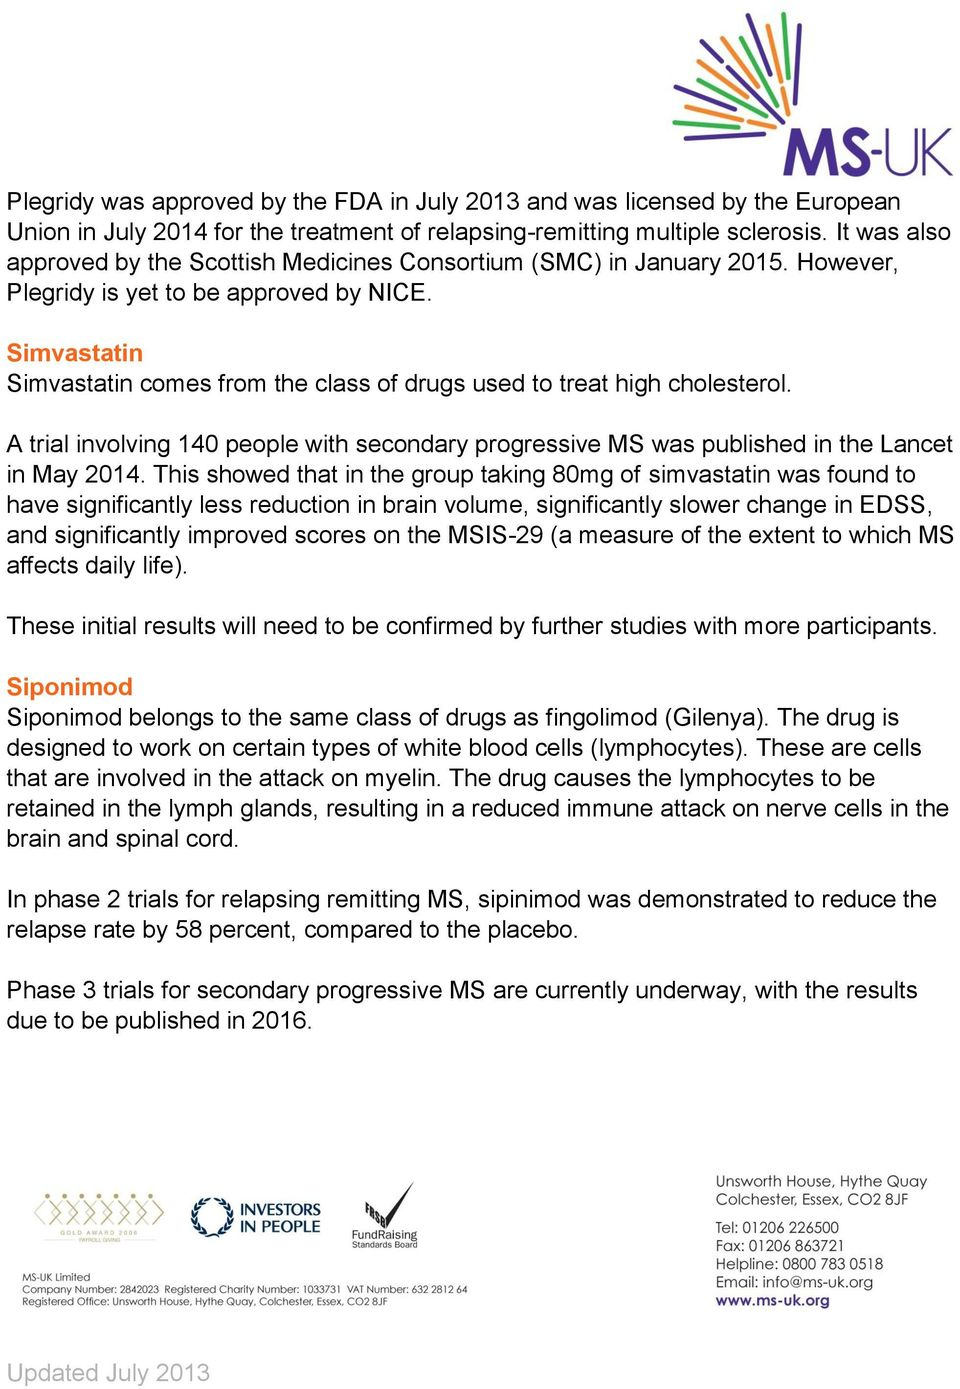 Simvastatin Simvastatin comes from the class of drugs used to treat high cholesterol. A trial involving 140 people with secondary progressive MS was published in the Lancet in May 2014.